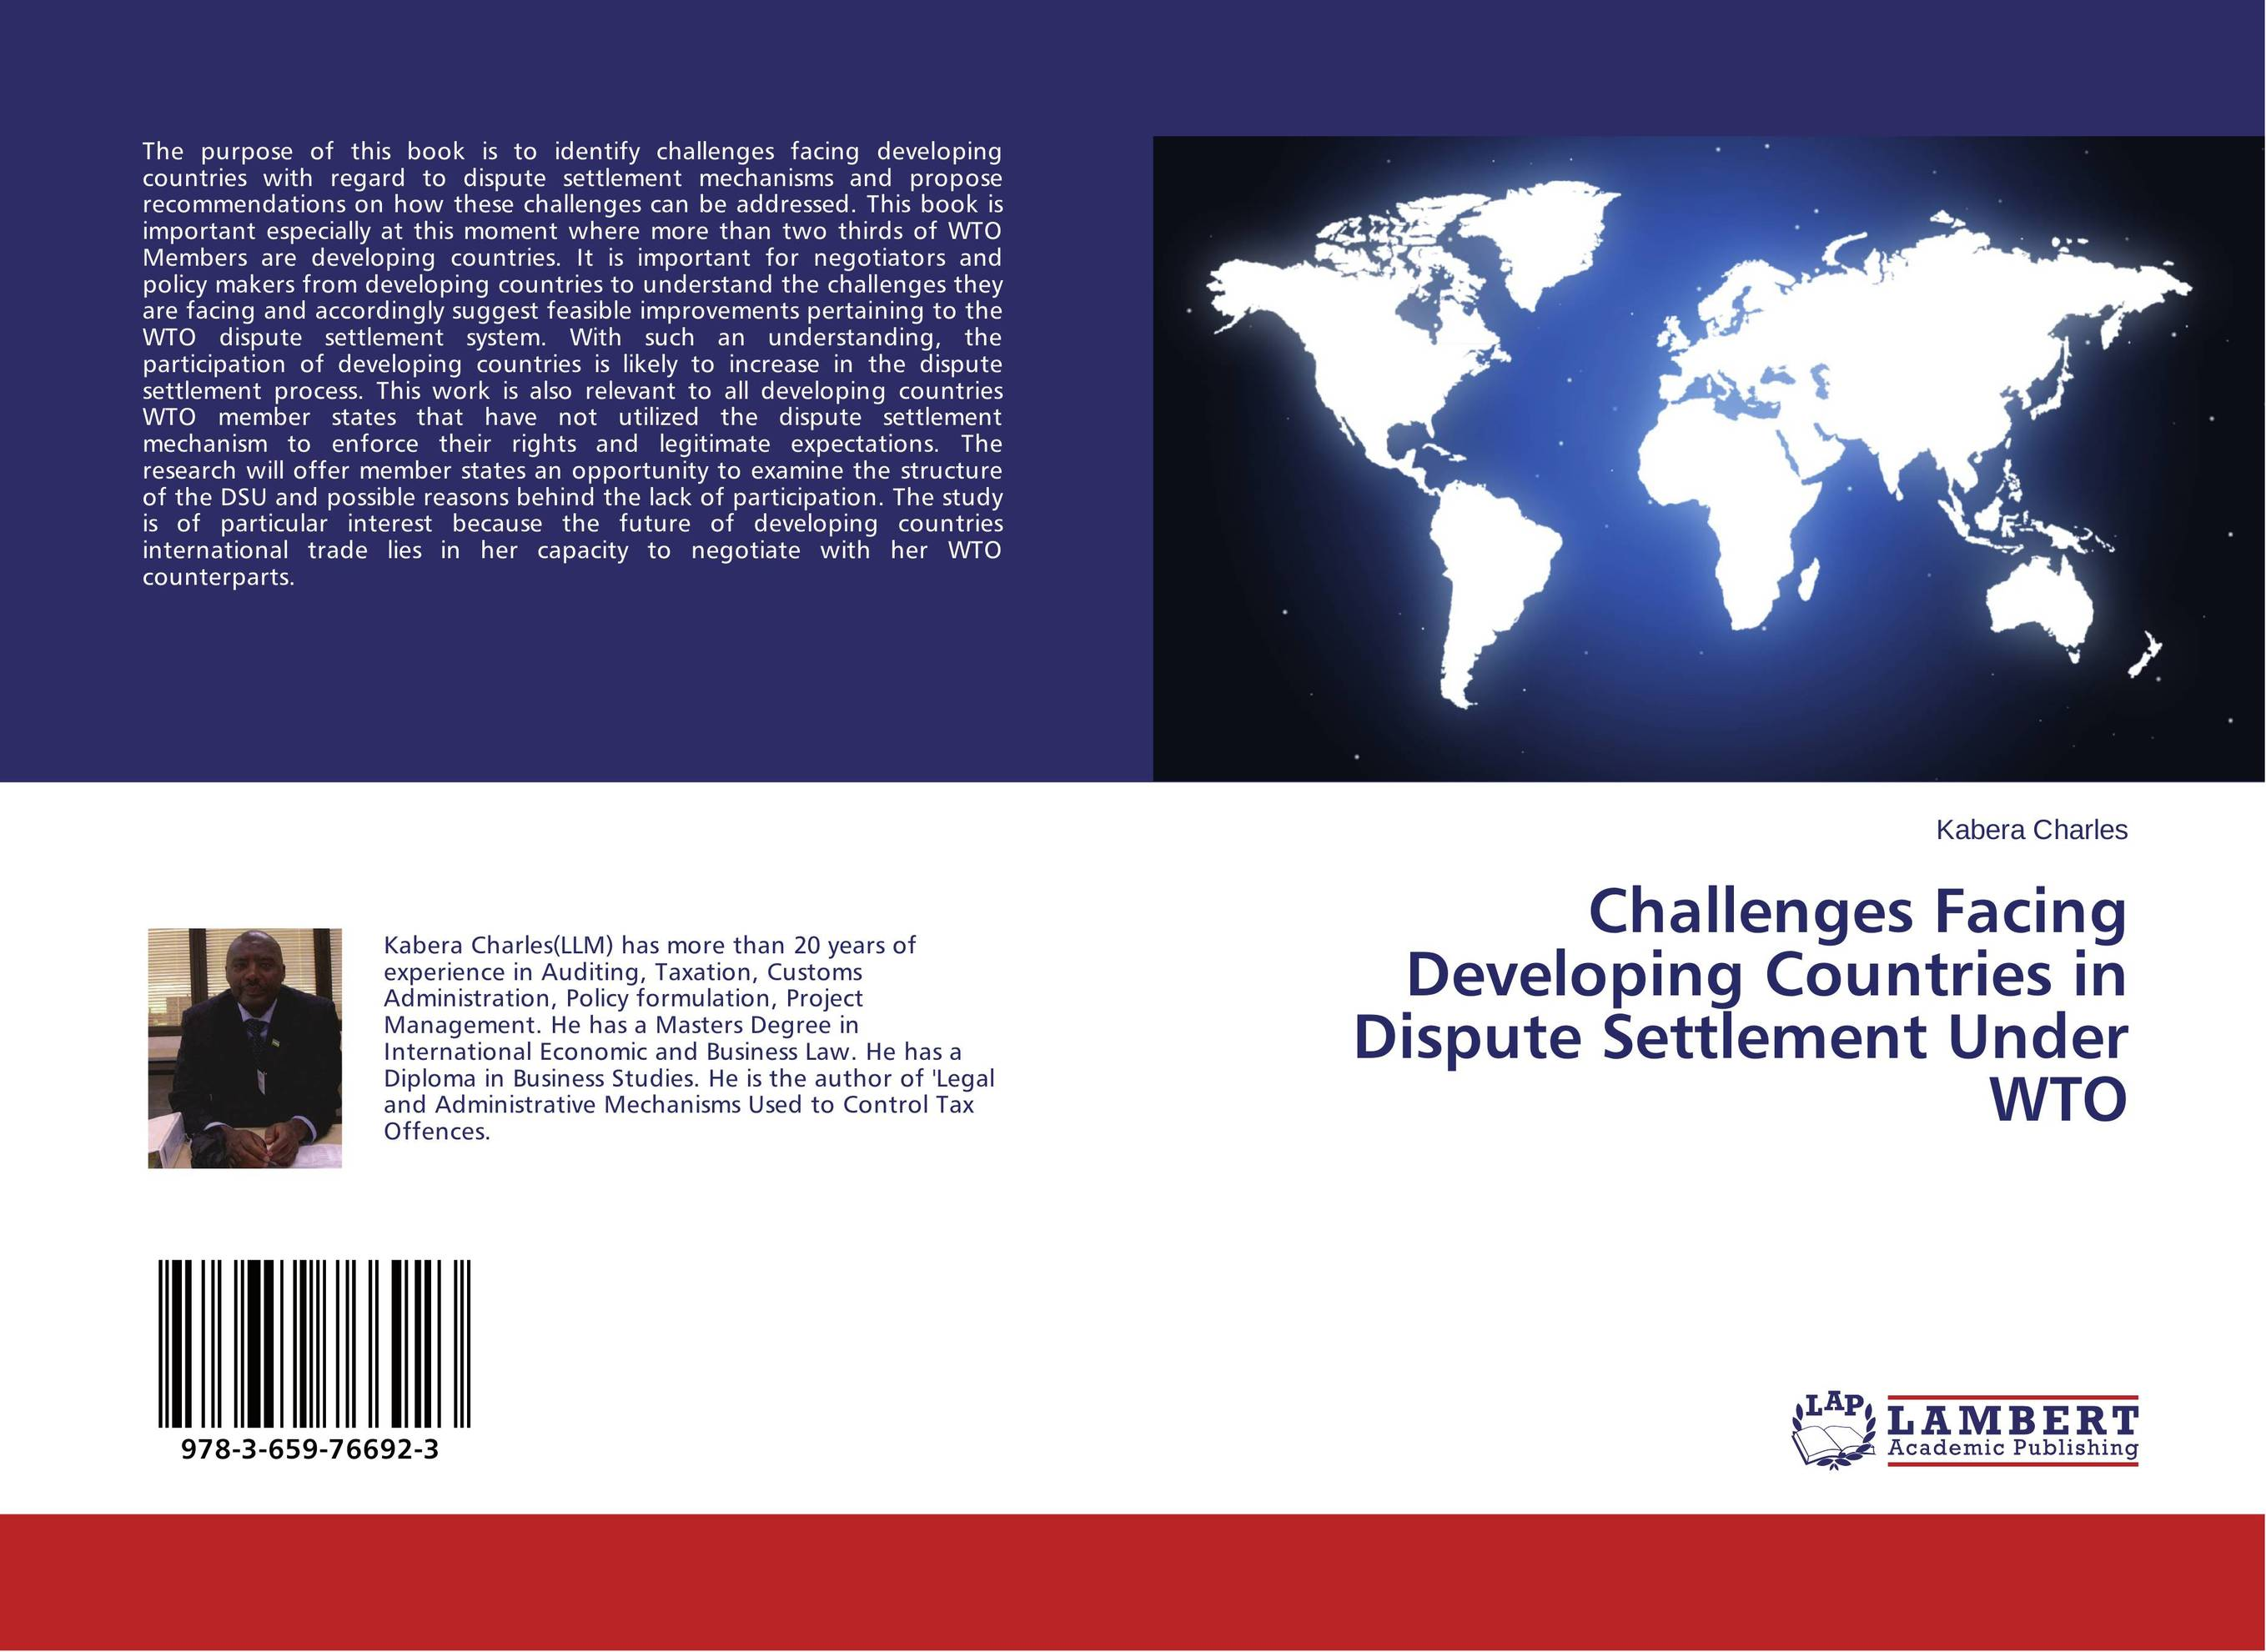 Challenges Facing Developing Countries in Dispute Settlement Under WTO